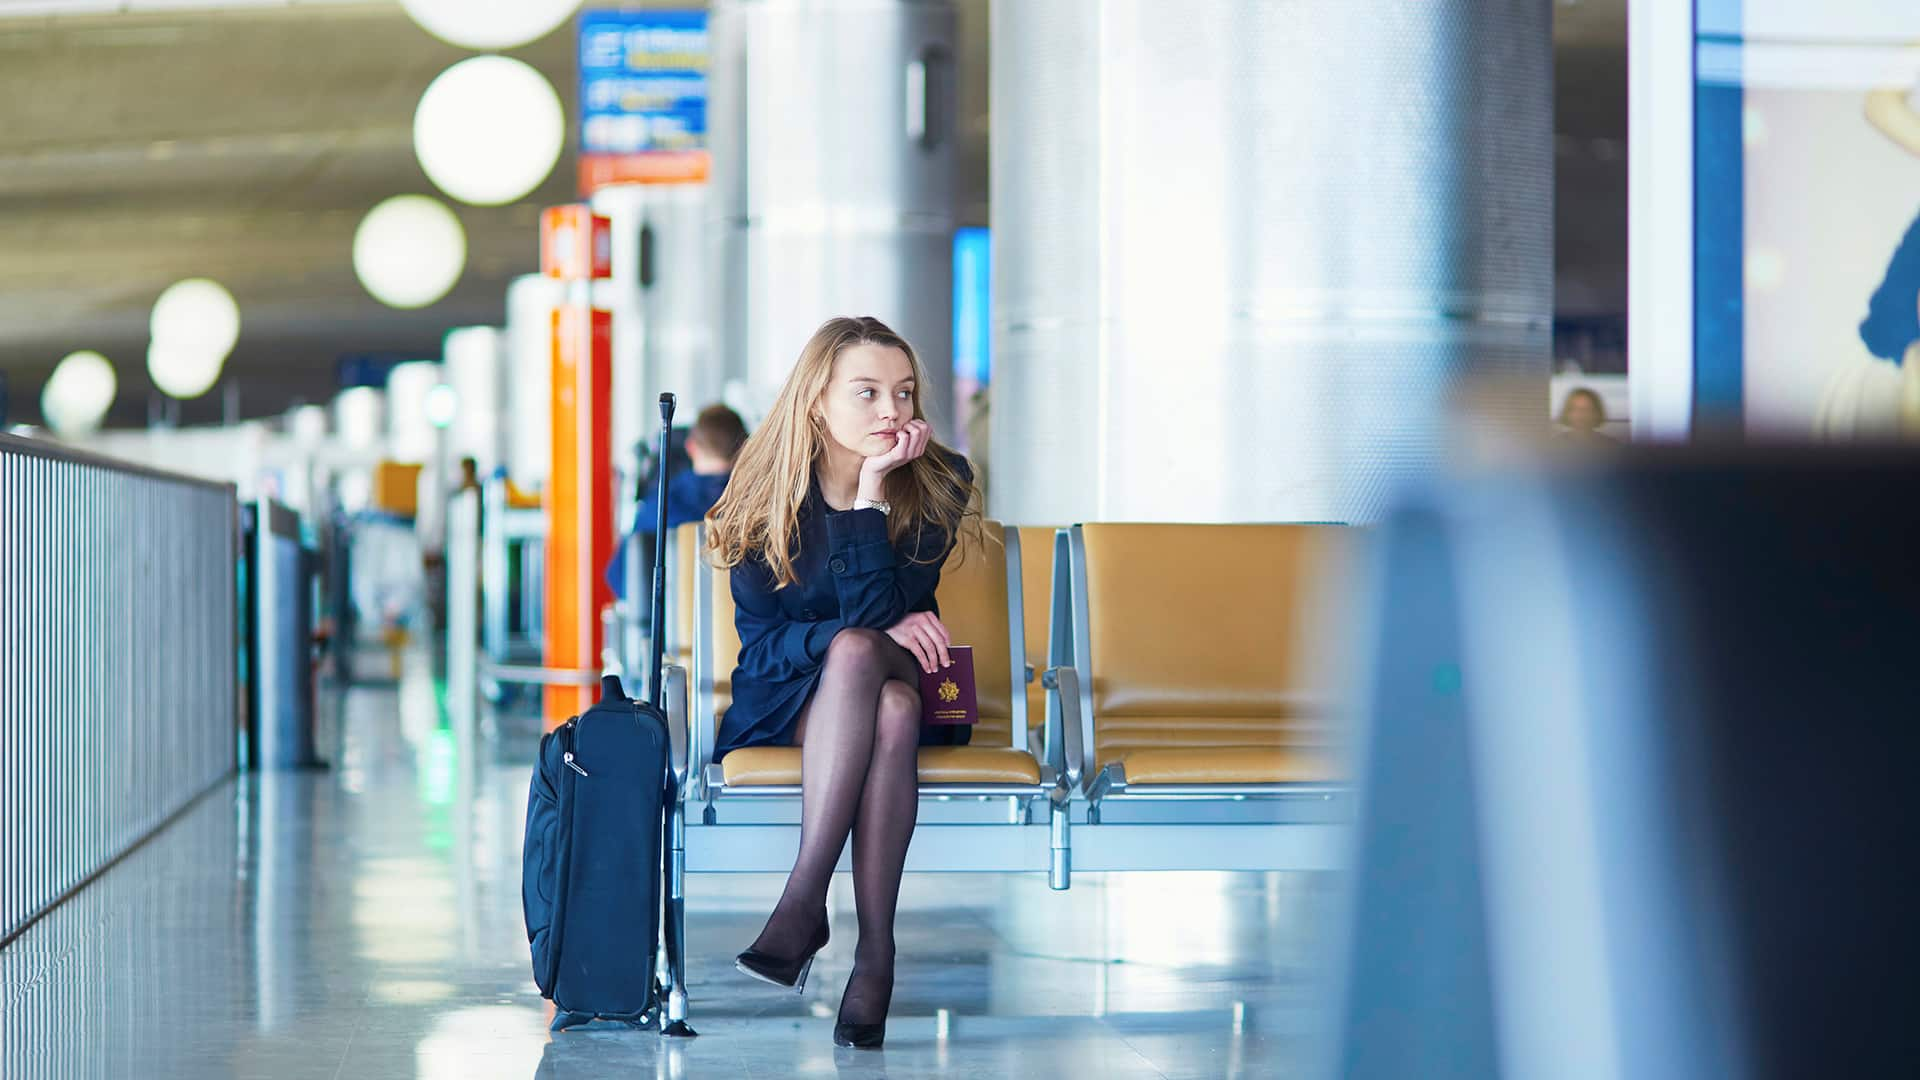 So you missed your flight. Now what?